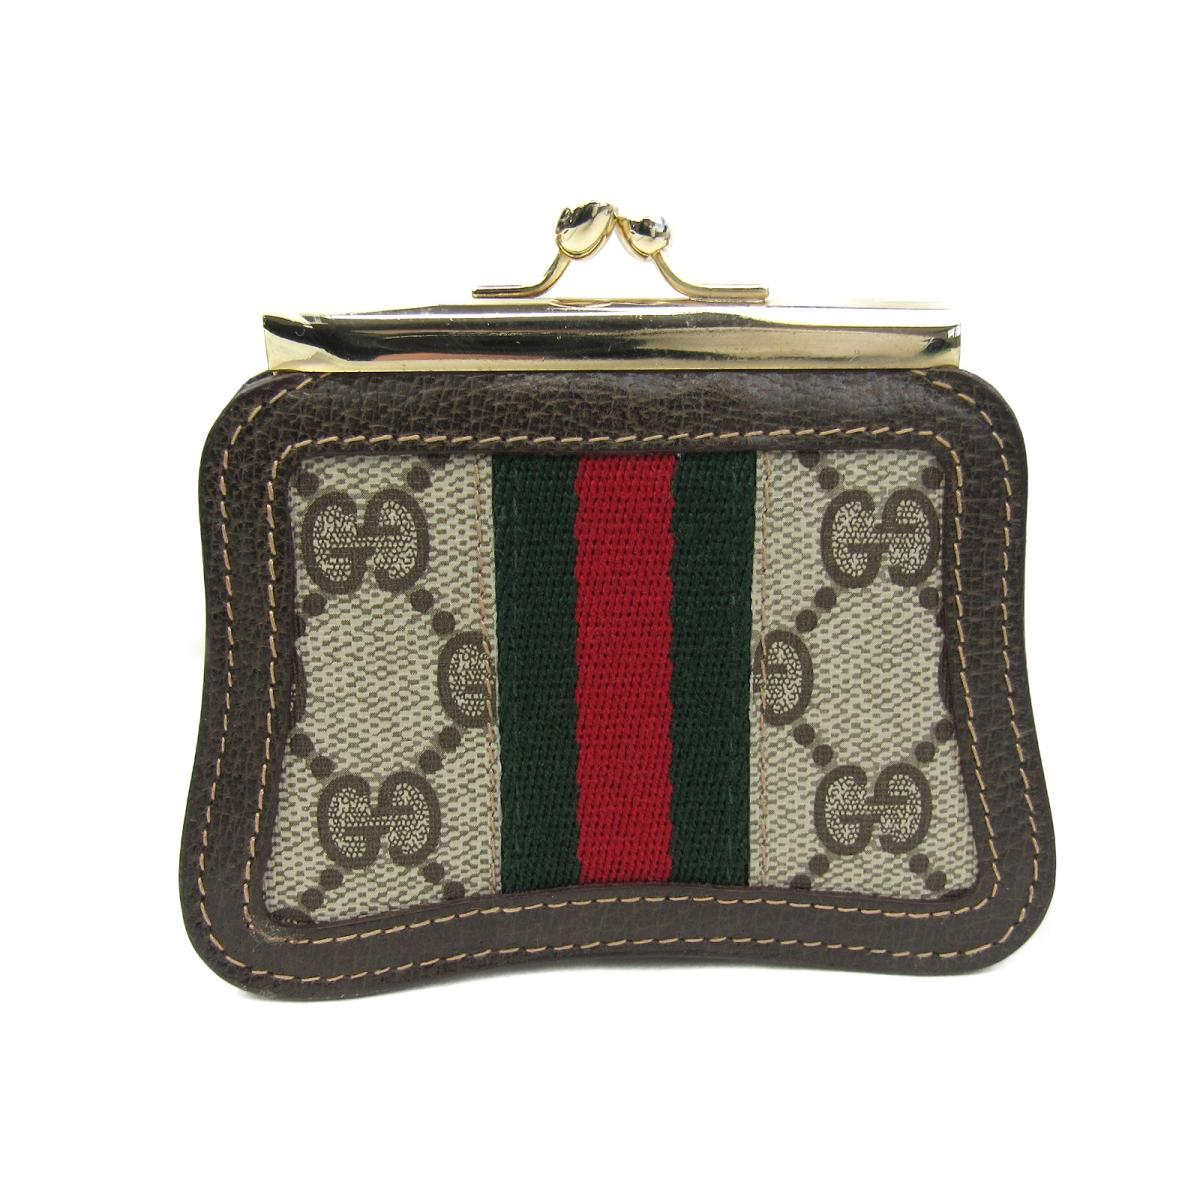 2111fb53c897 Gucci GG スプリーム pouch wallet wallet Lady's coating canvas (PVC) x leather  brown x beige x tricolor   GUCCI BRANDOFF brand off-brand brand wallet coin  ...